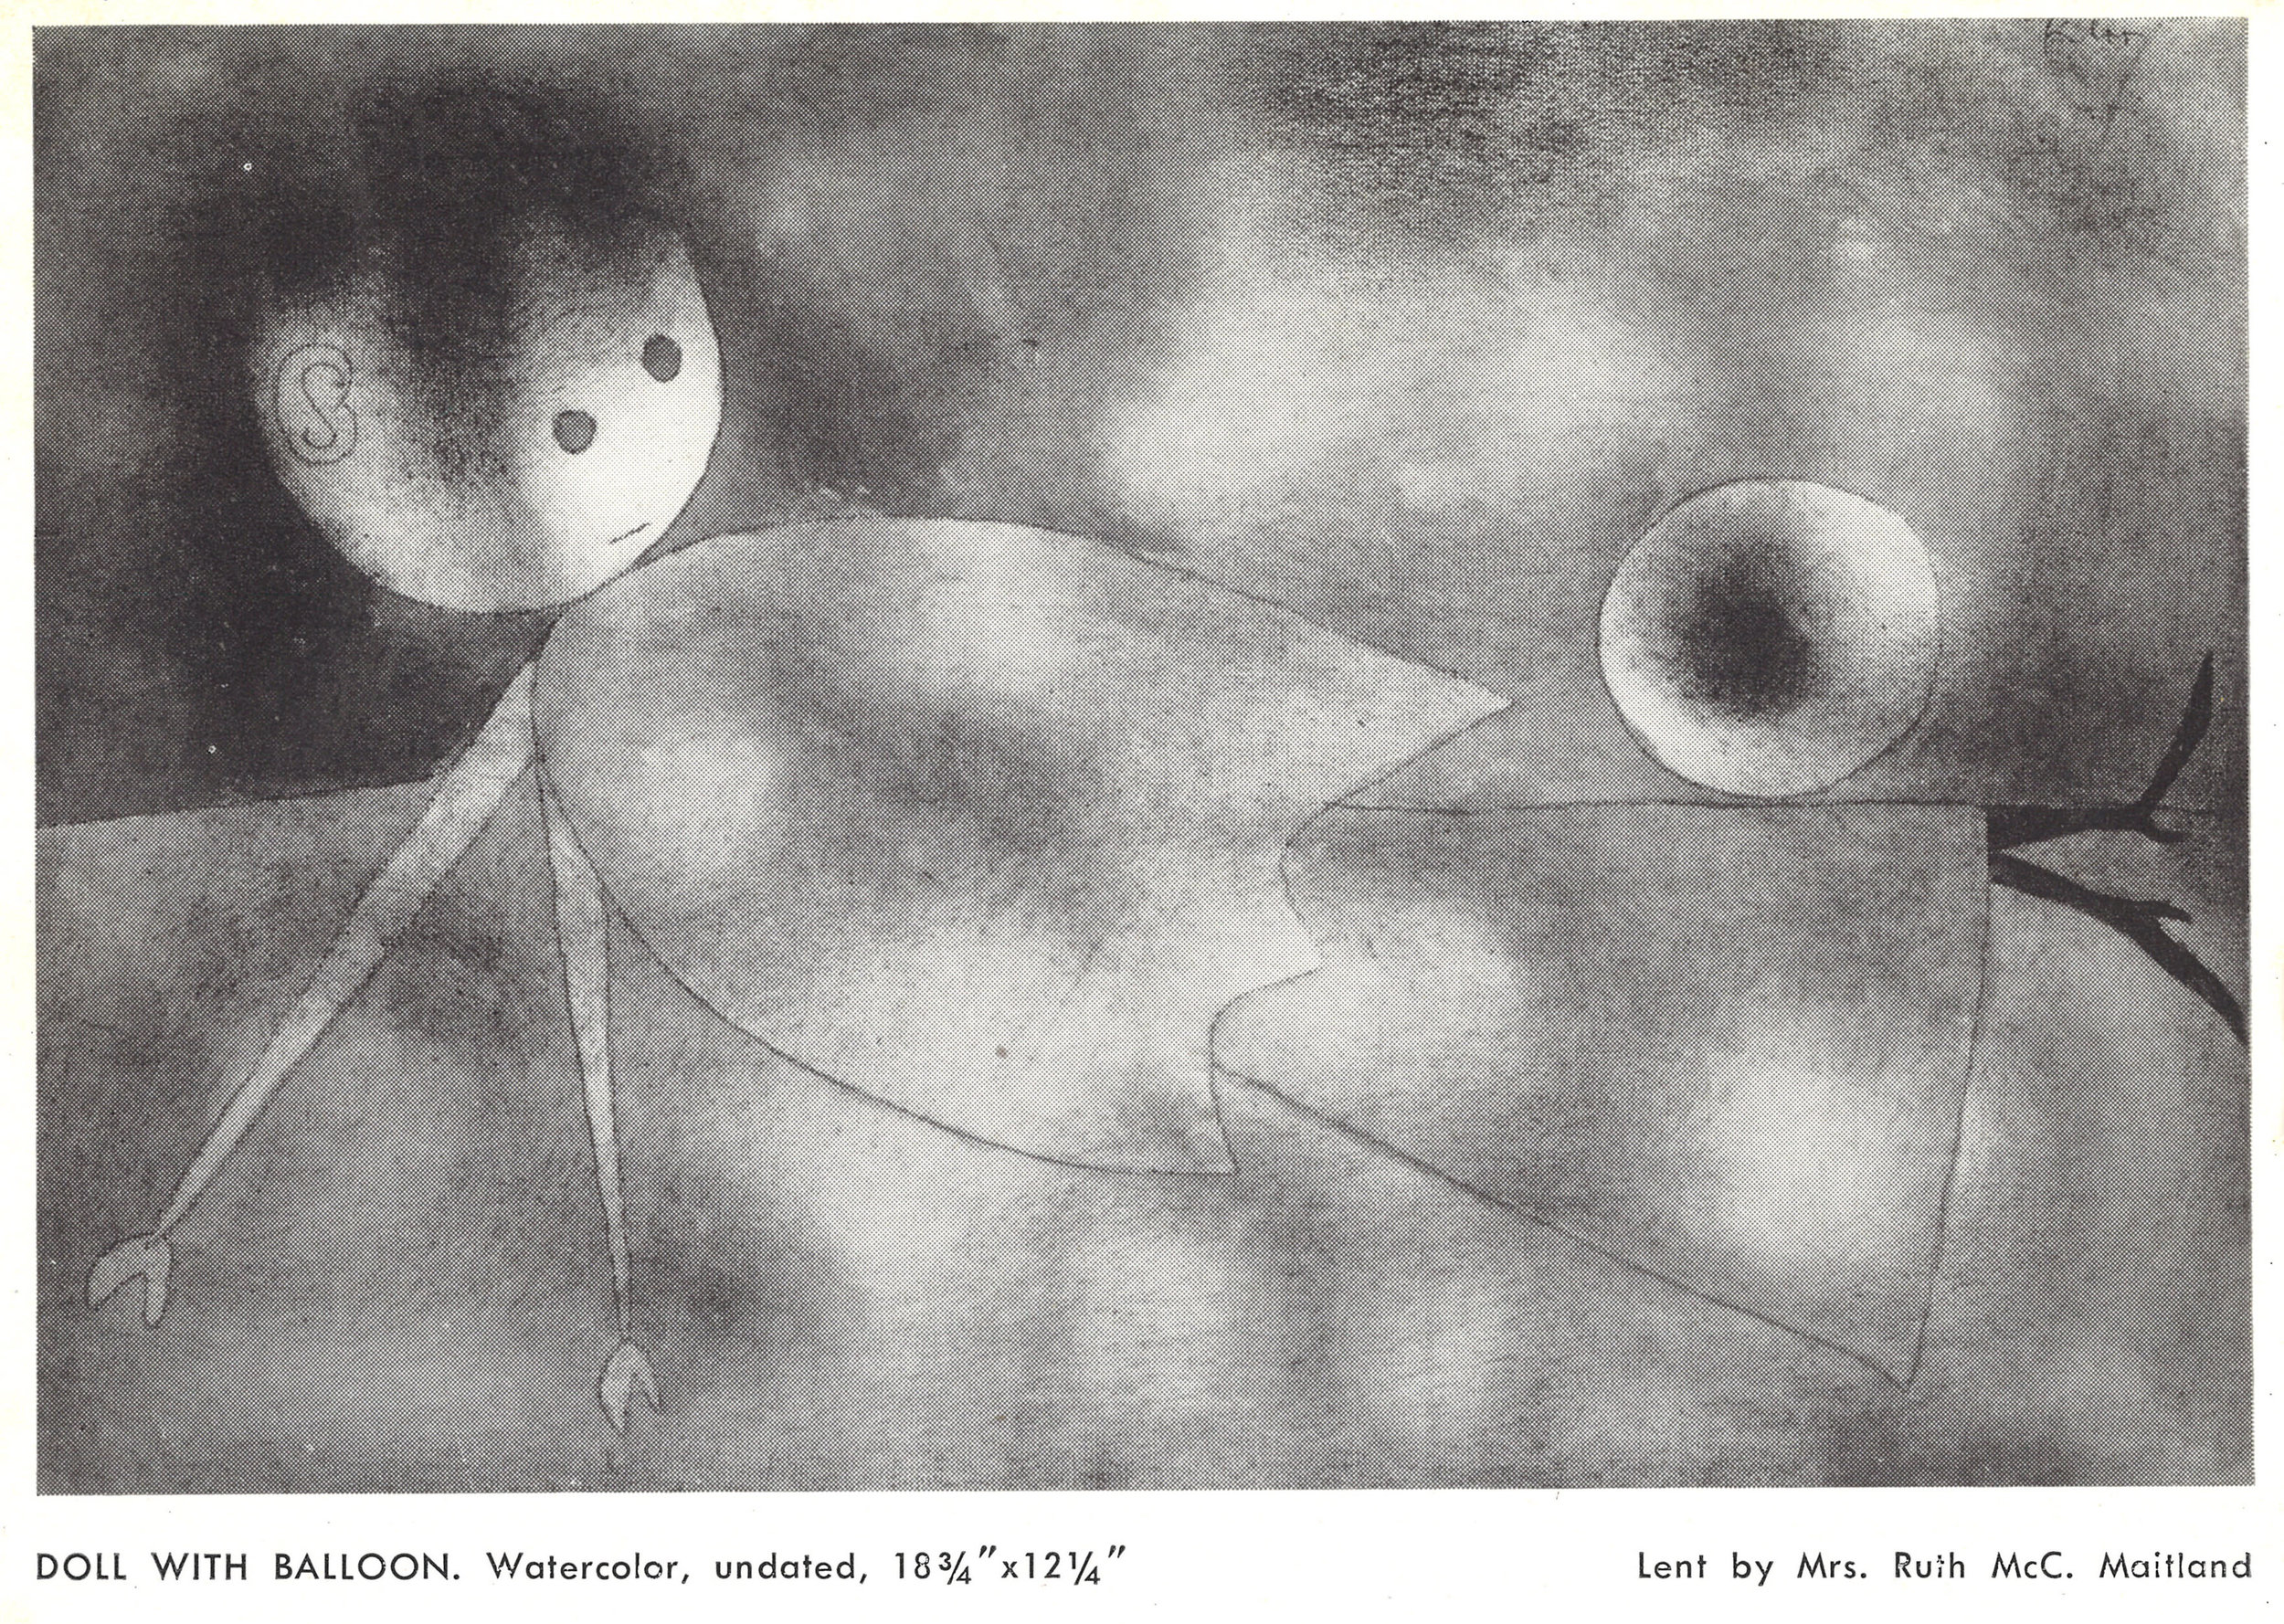 Abb. 1 Paul Klee,  Ball und Puppe , 1934, 145 (R5), Aquarell= und Ölfarben Ingres d'arches; Blatt mehrfarbig, Illustration in: Klee. 30 Years of Paintings, Water Colors, Drawings and Lithographs - and in a Klee-like-mood 2000 Years of Coptic, Persian, Chinese, European and Peruvian Textiles. The Modern Institute of Art, Beverly Hills, 3.9.-6.10.1948,Nr. 69.  © Zentrum Paul Klee, Bern, Archiv